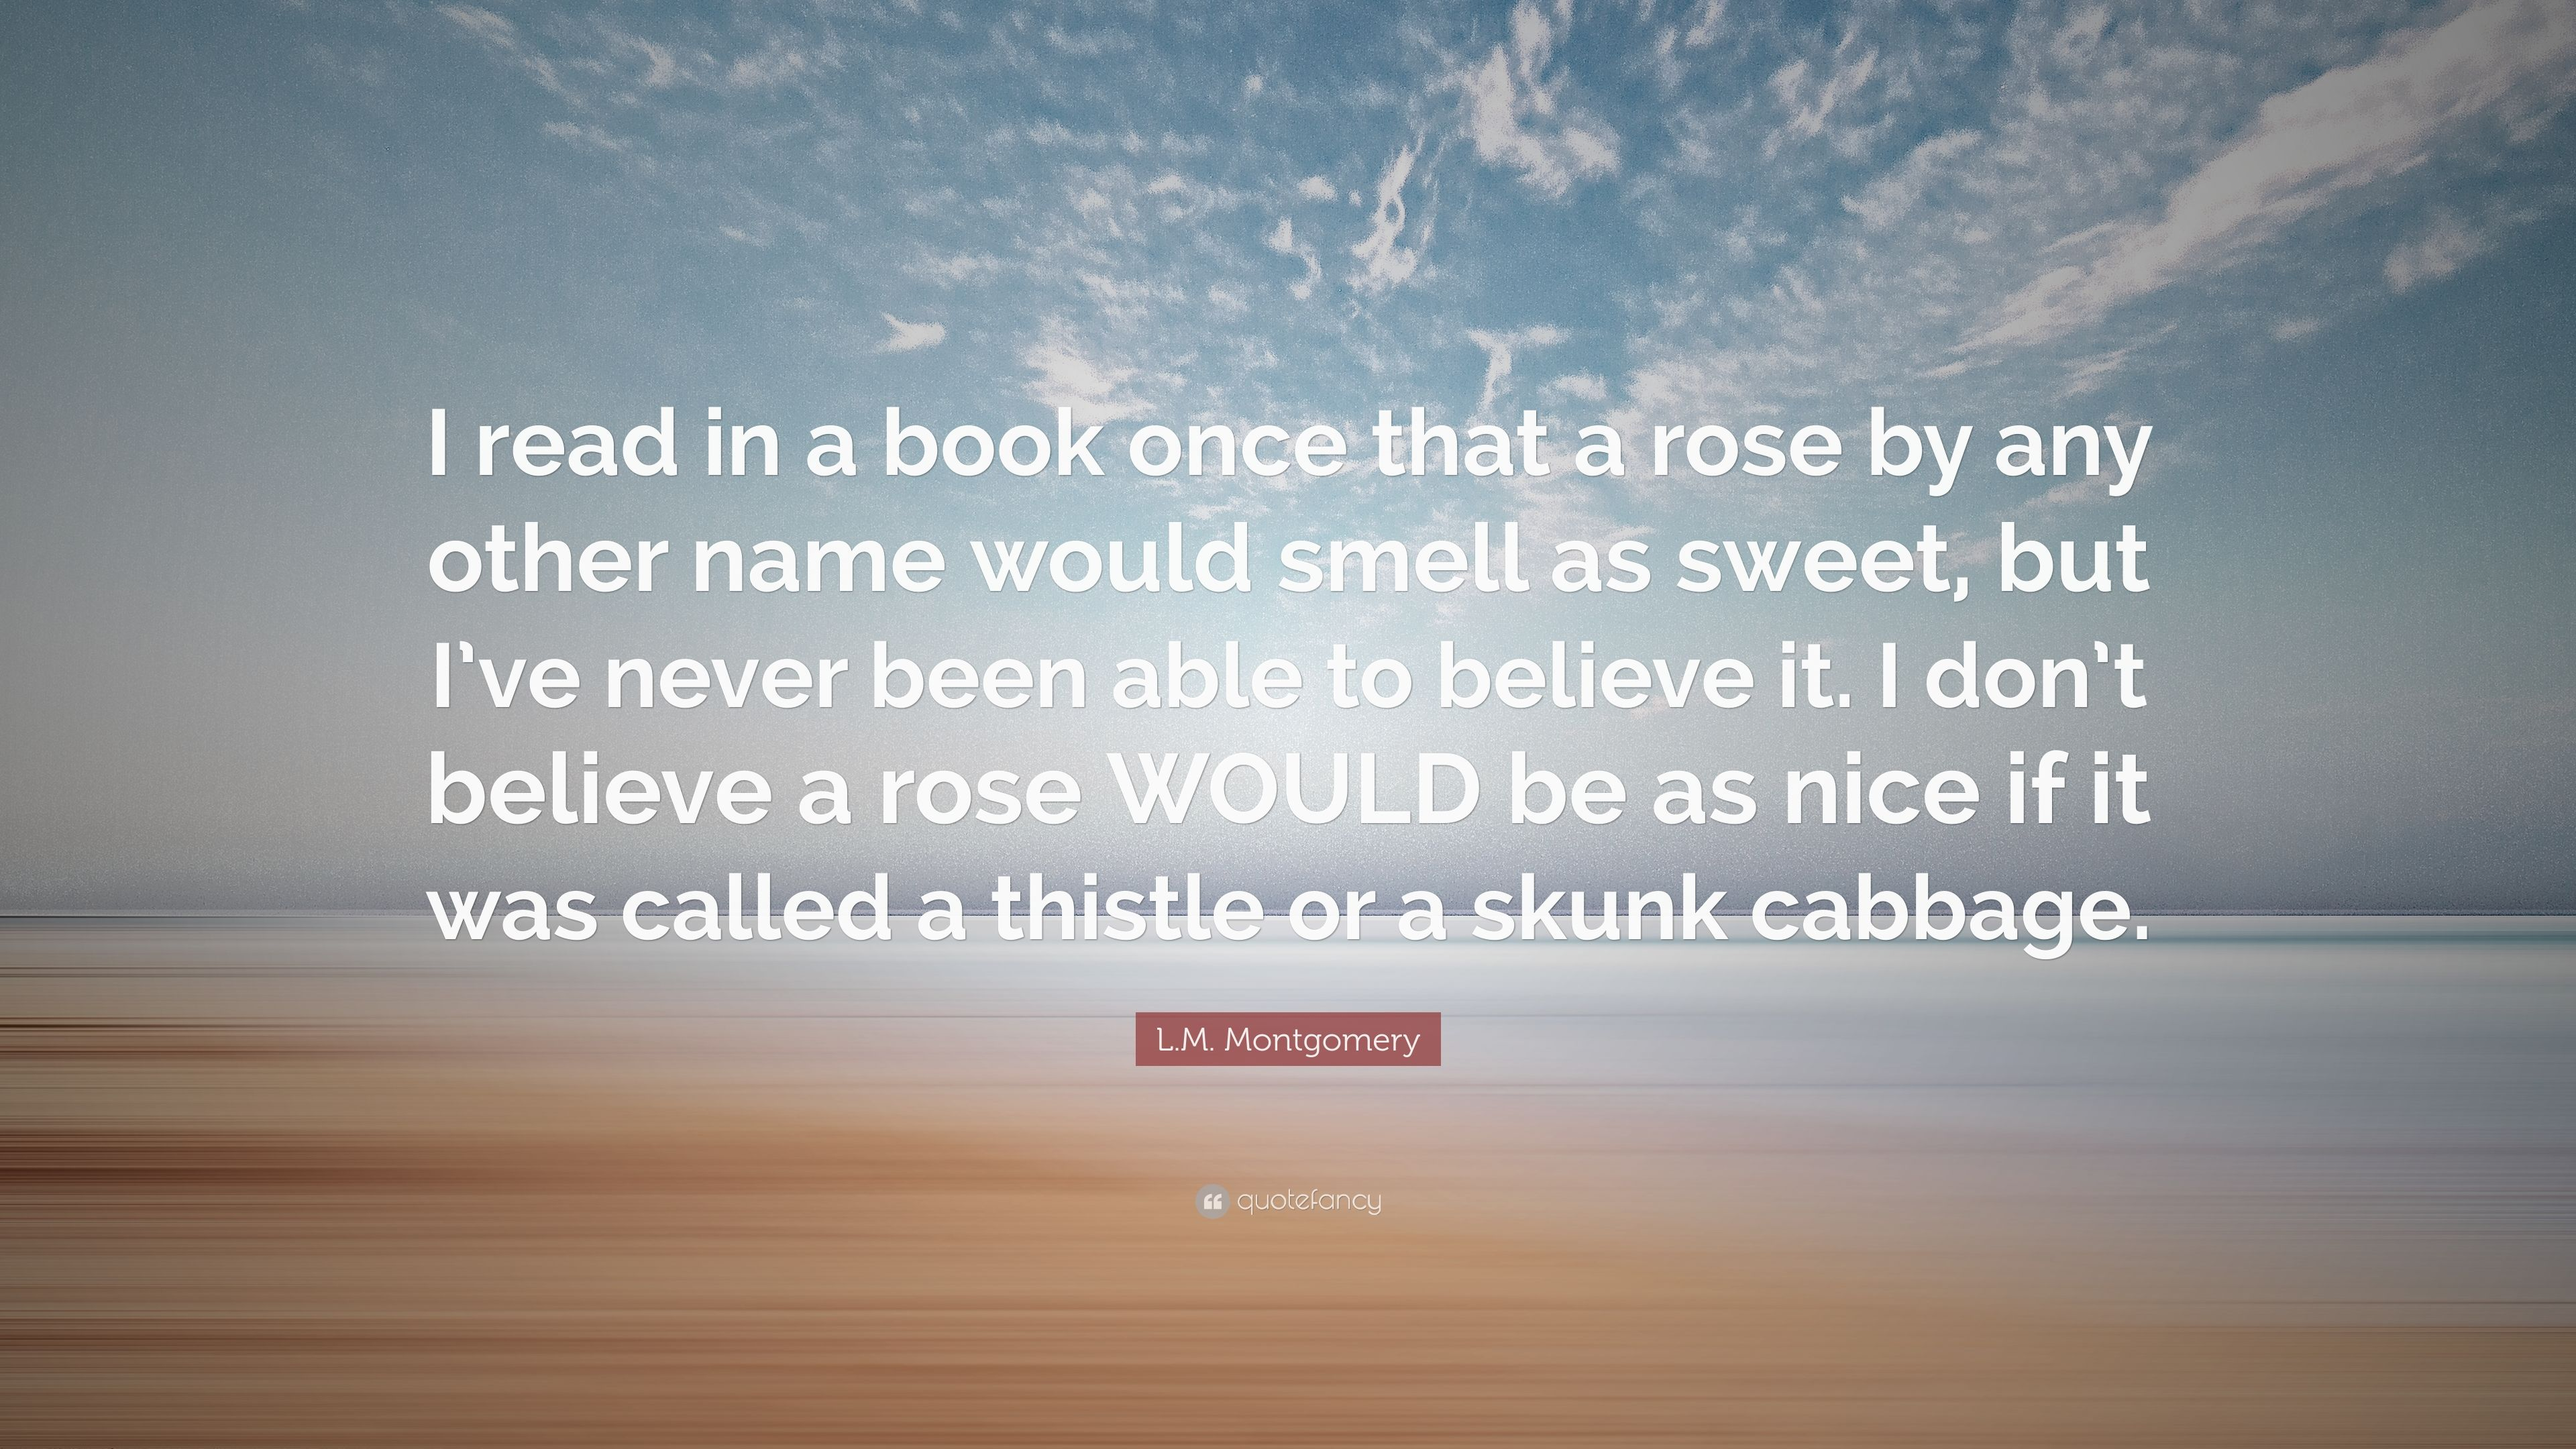 """L.M. Montgomery Quote: """"I read in a book once that a rose by any other name would smell as sweet ..."""